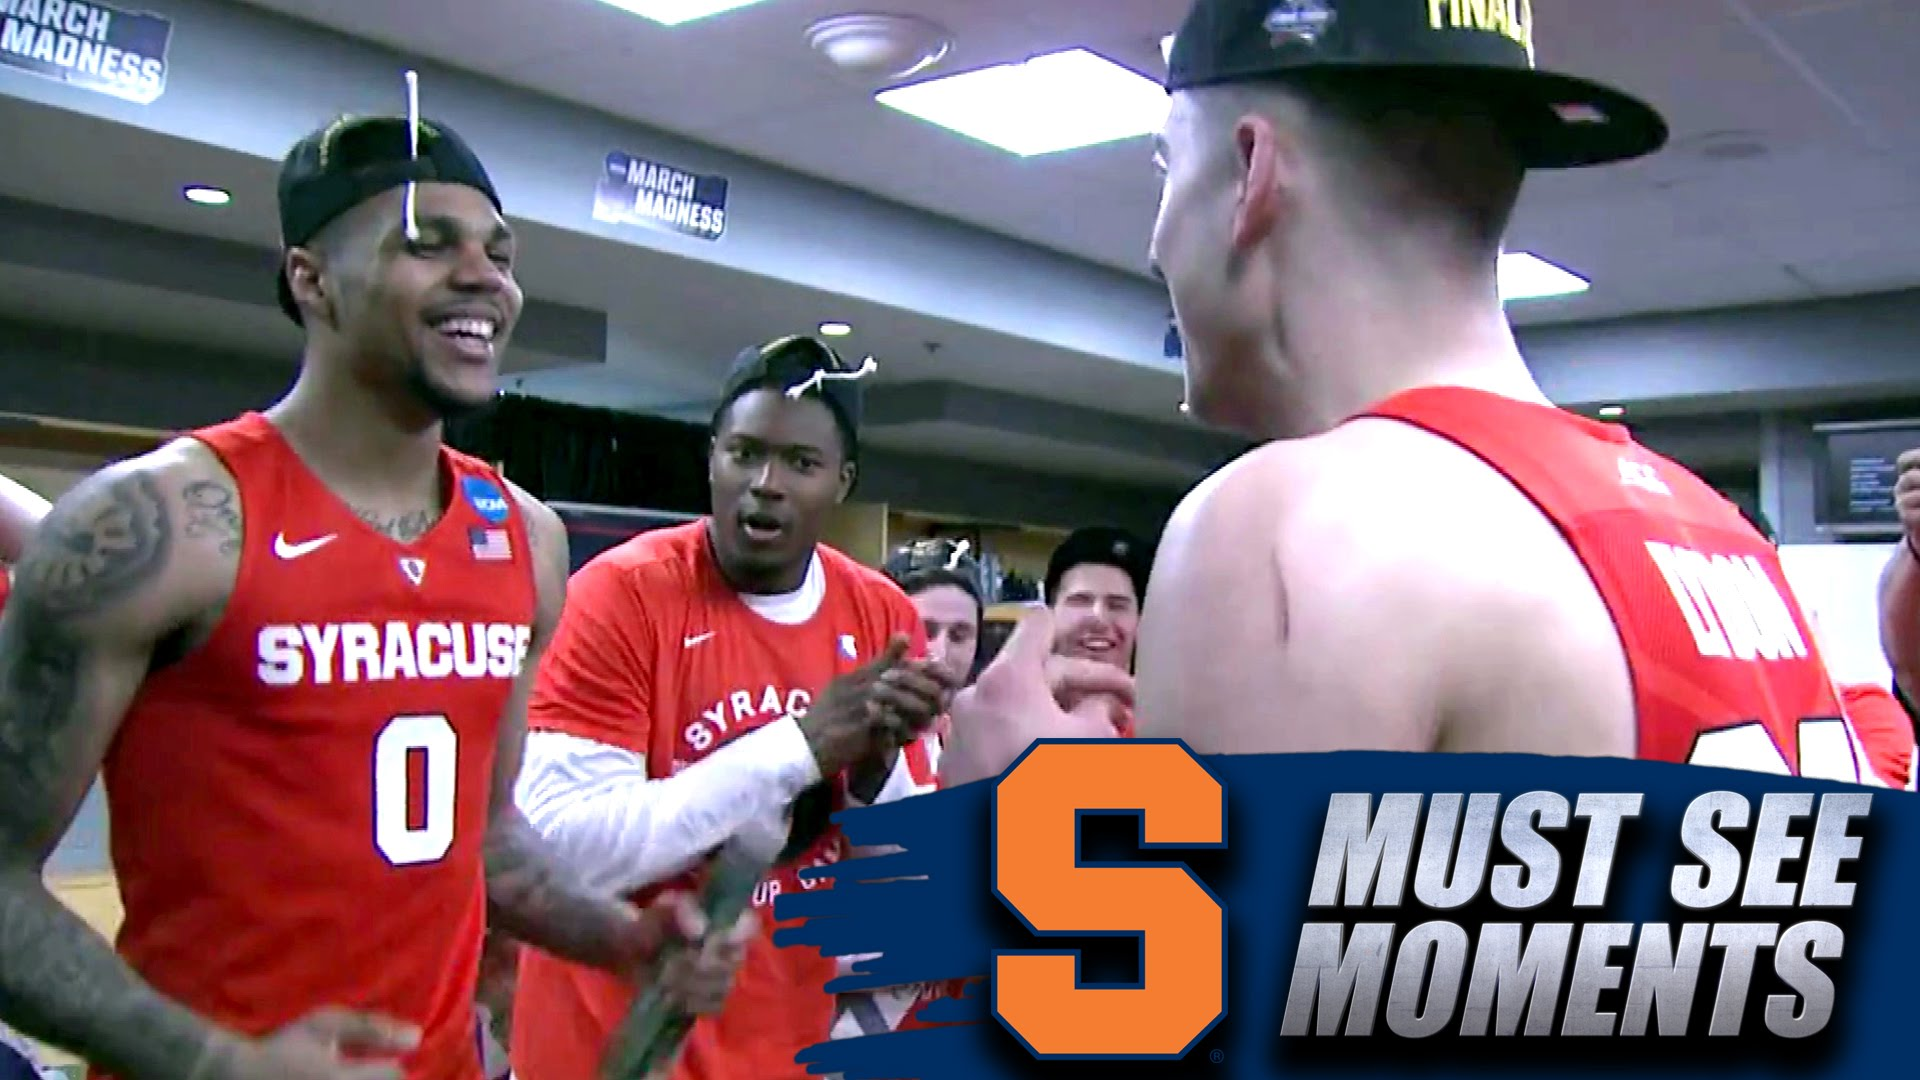 Jim Boeheim gives locker room speech to Syracuse after advancing to Final Four